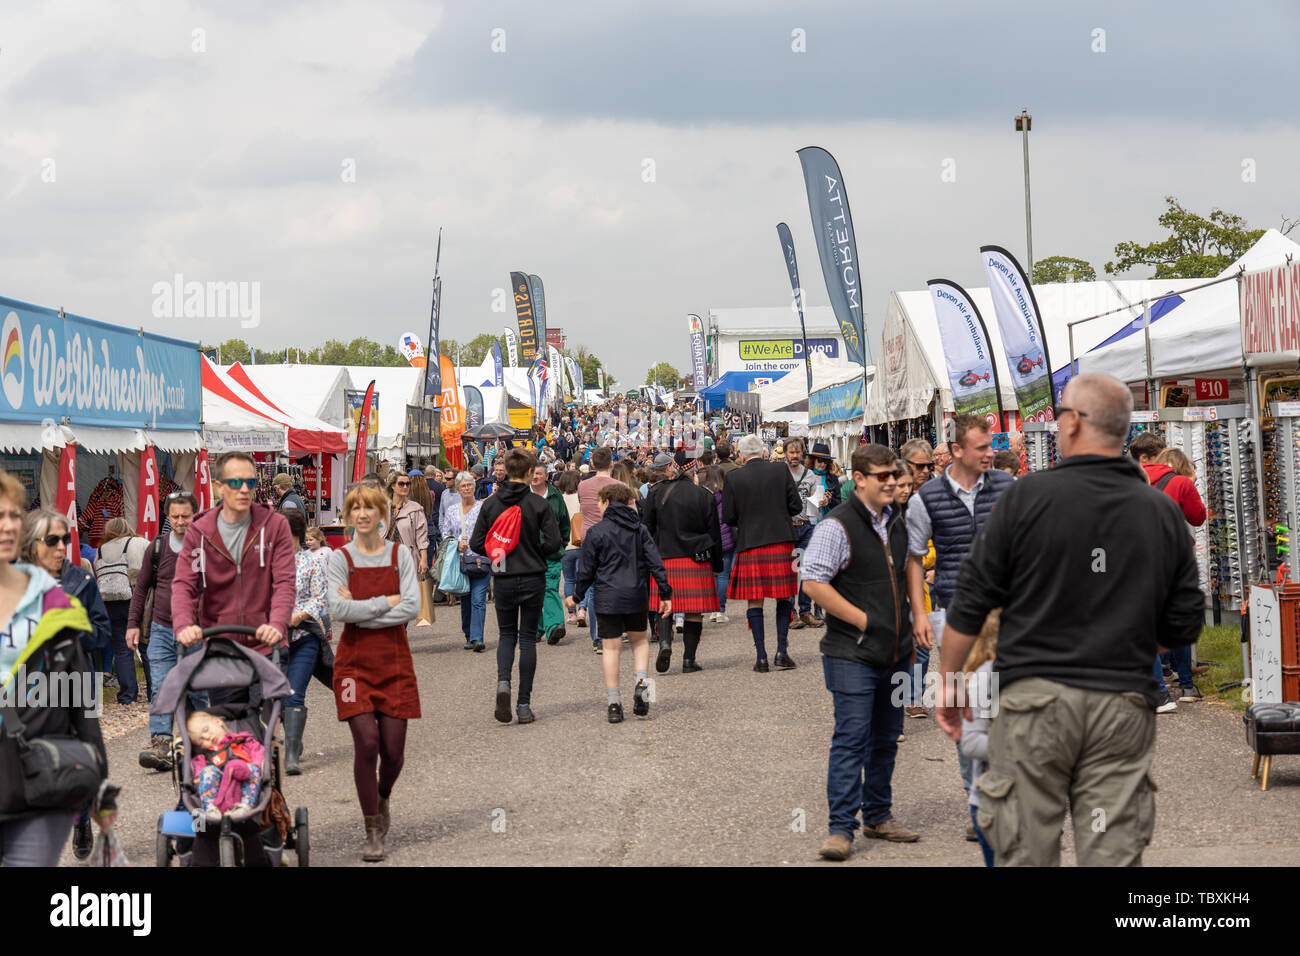 Crowds at the Devon County Show - Stock Image